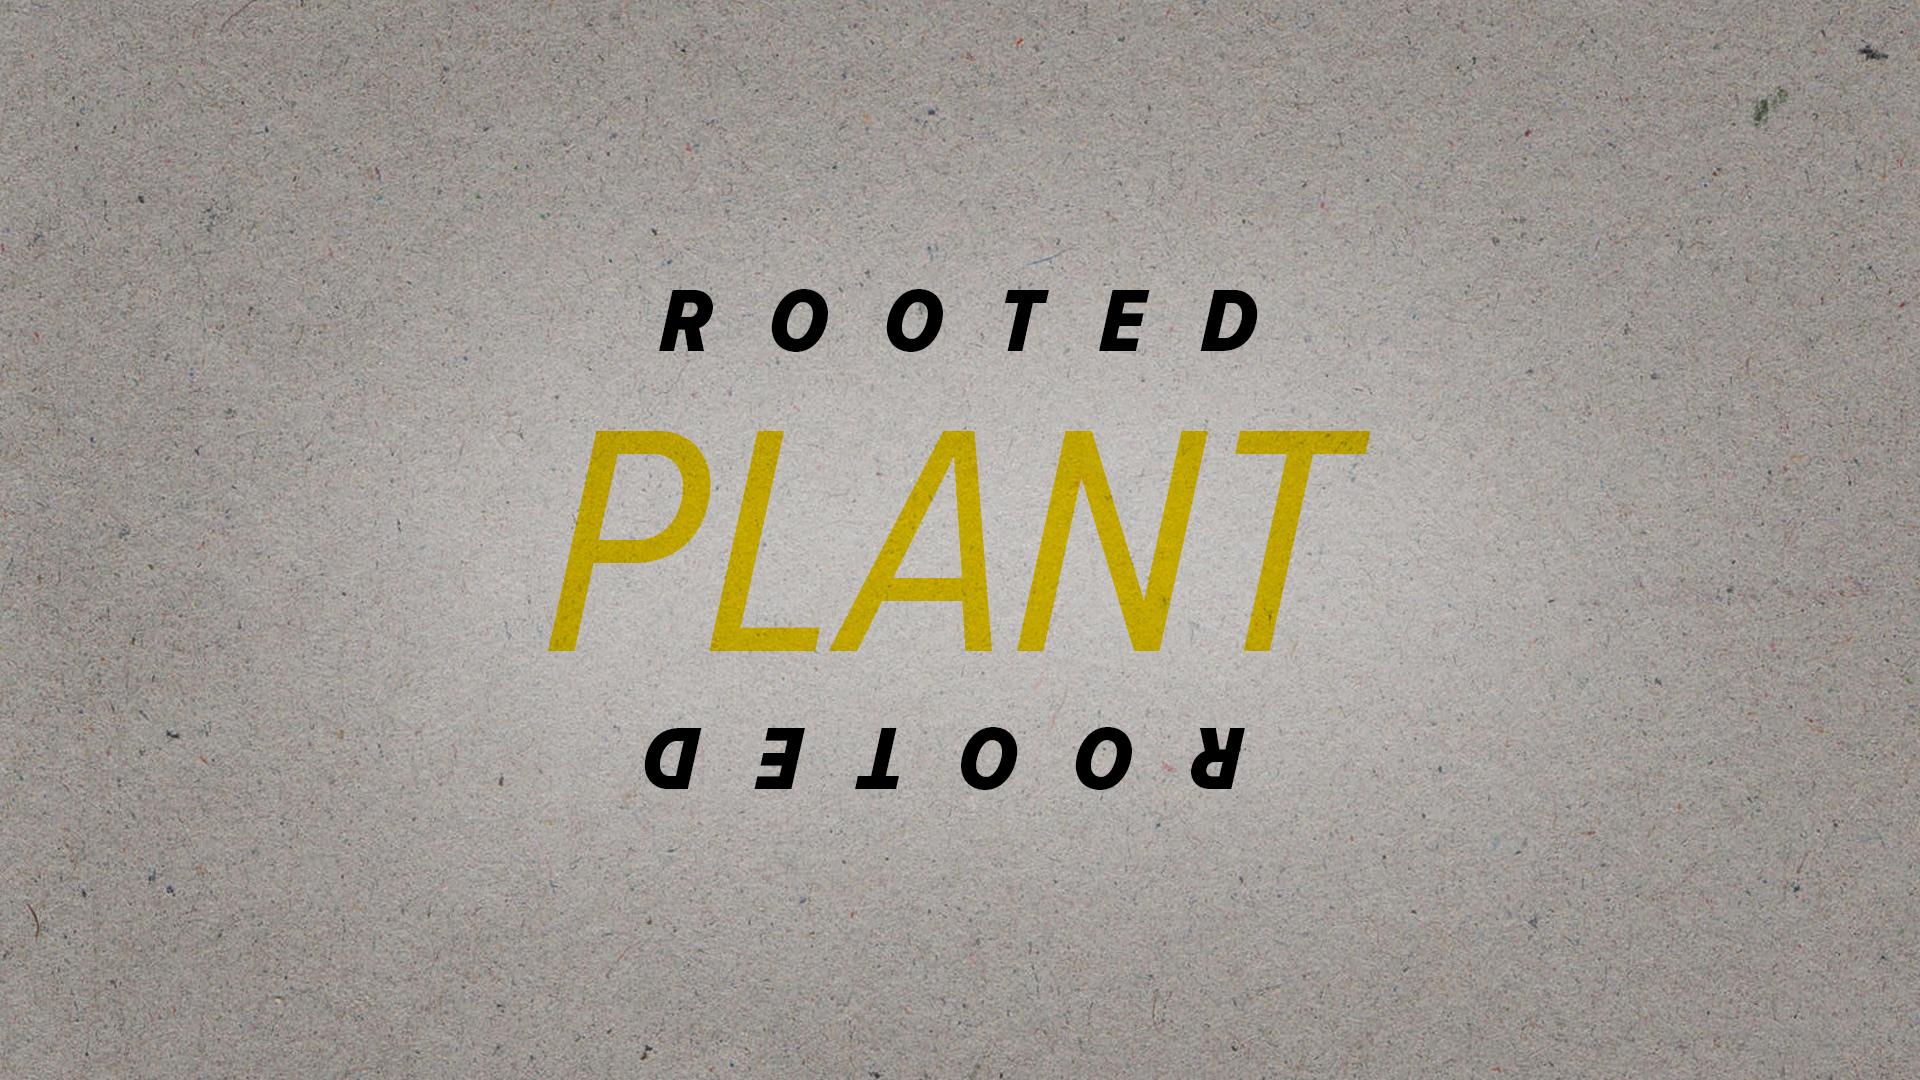 Rooted_Plant.jpg